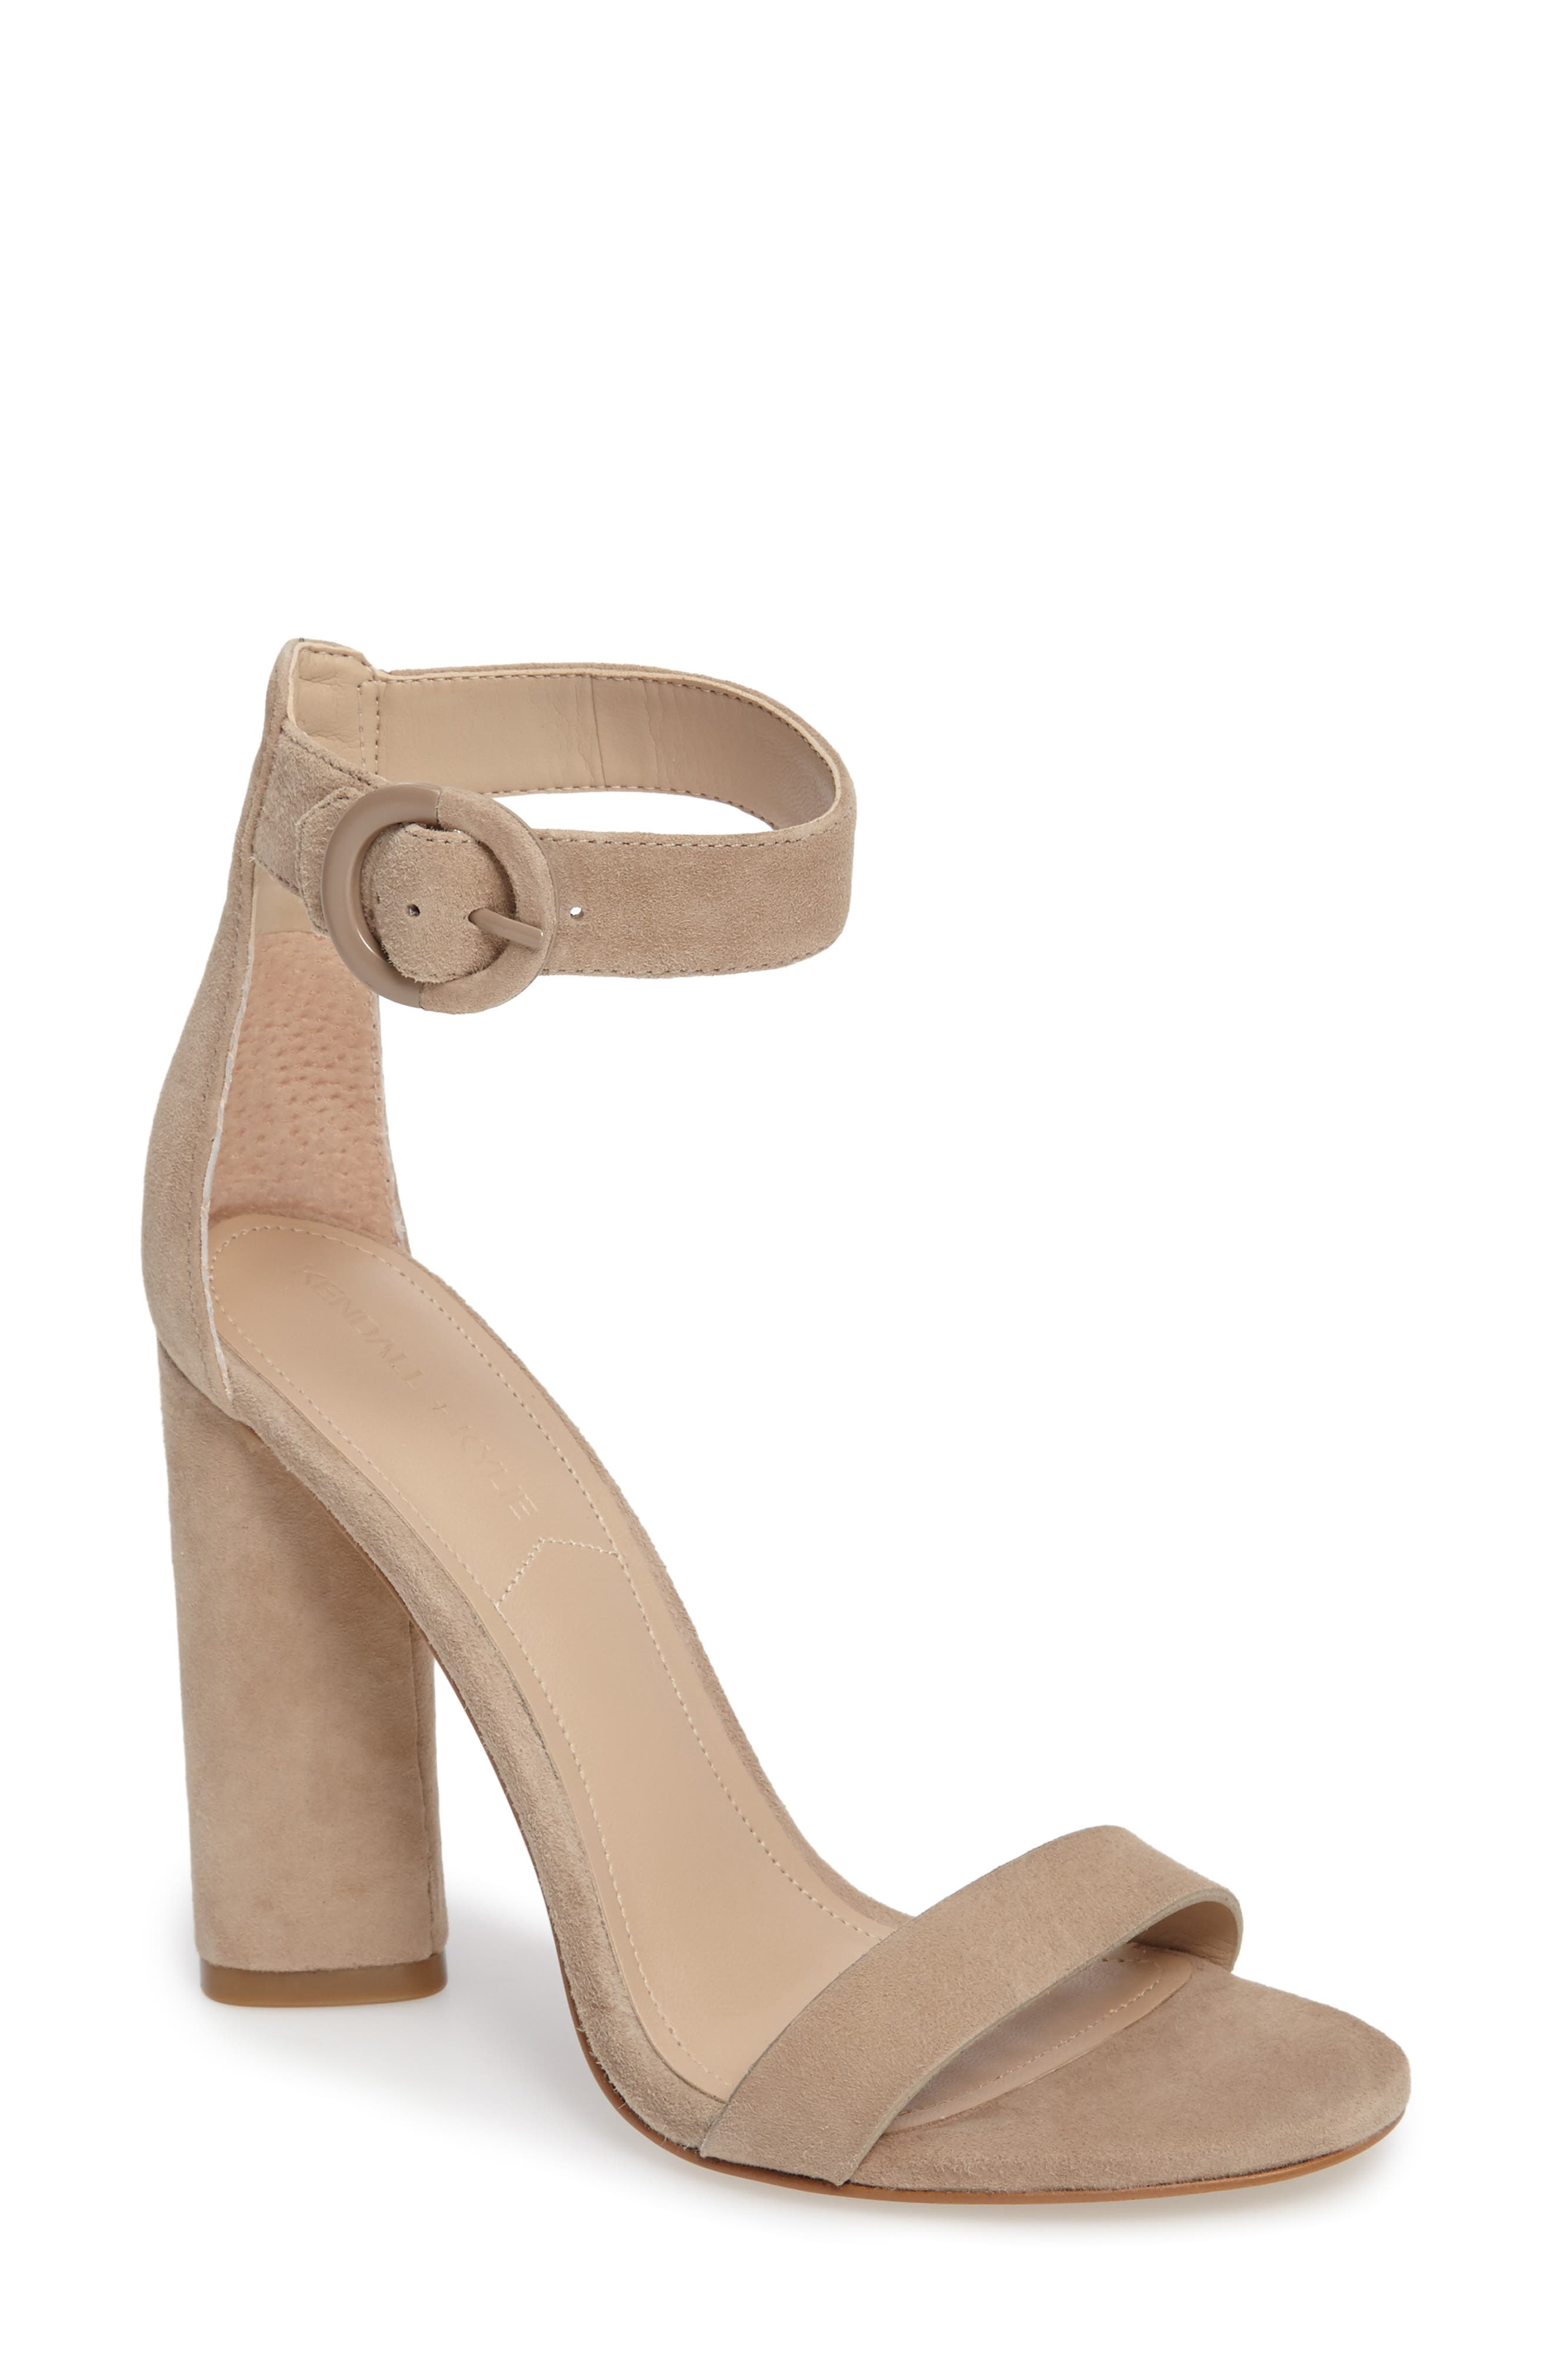 Main Image - KENDALL + KYLIE Giselle Strappy Sandal (Women)